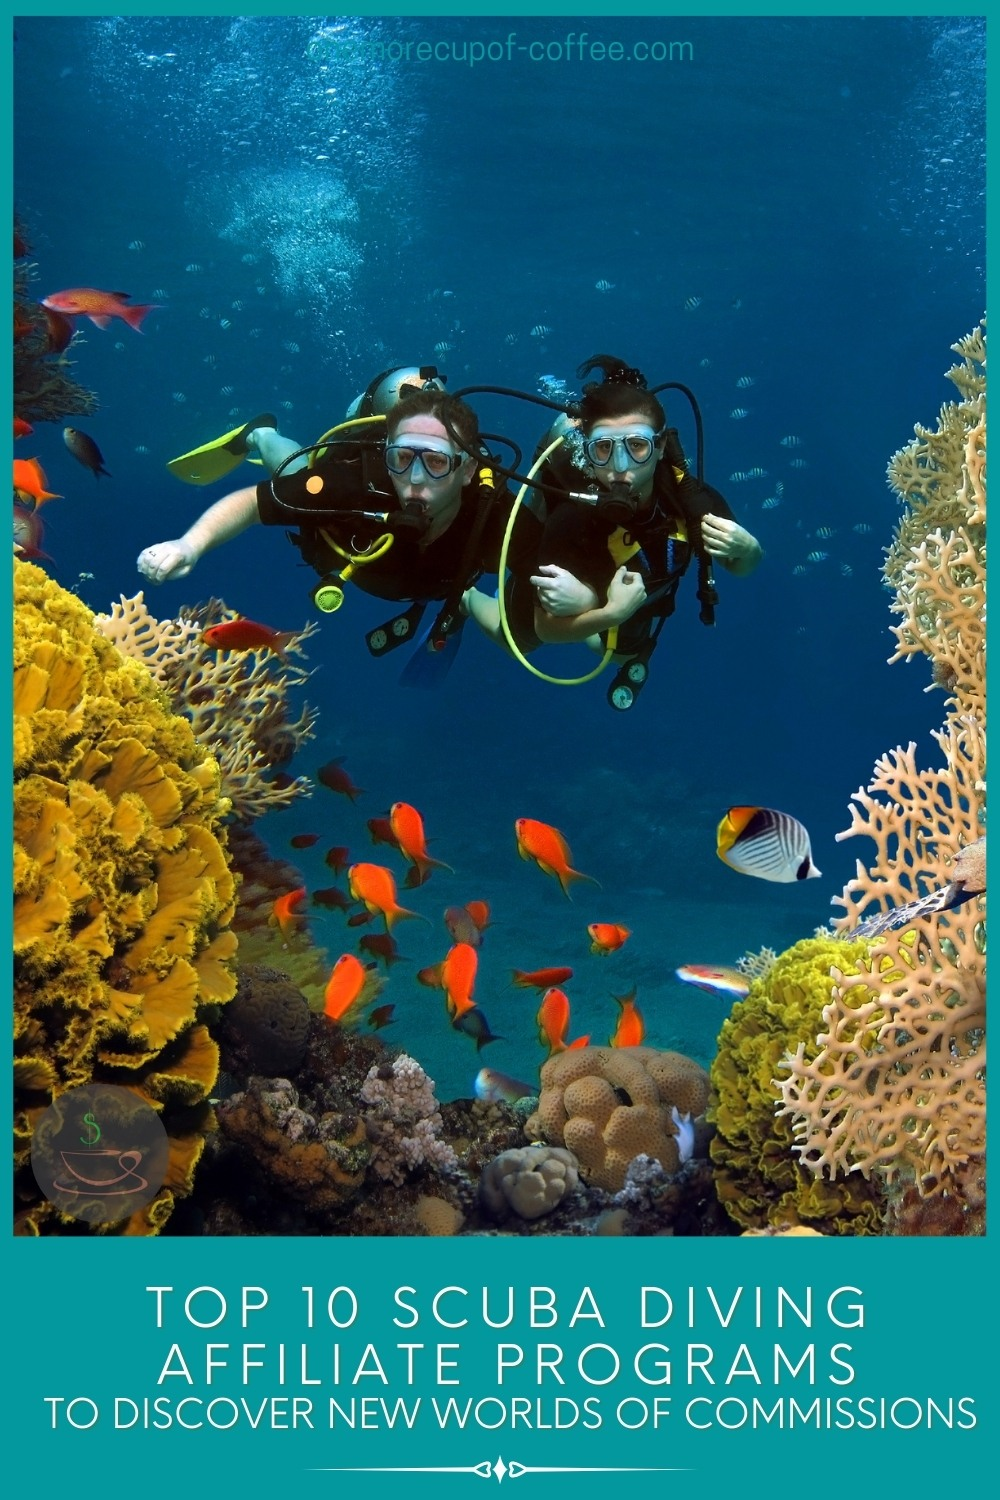 """scuba diving couple among different kinds of fish and corals, with text overlay """"Top 10 Scuba Diving Affiliate Programs To Discover New Worlds Of Commissions"""""""